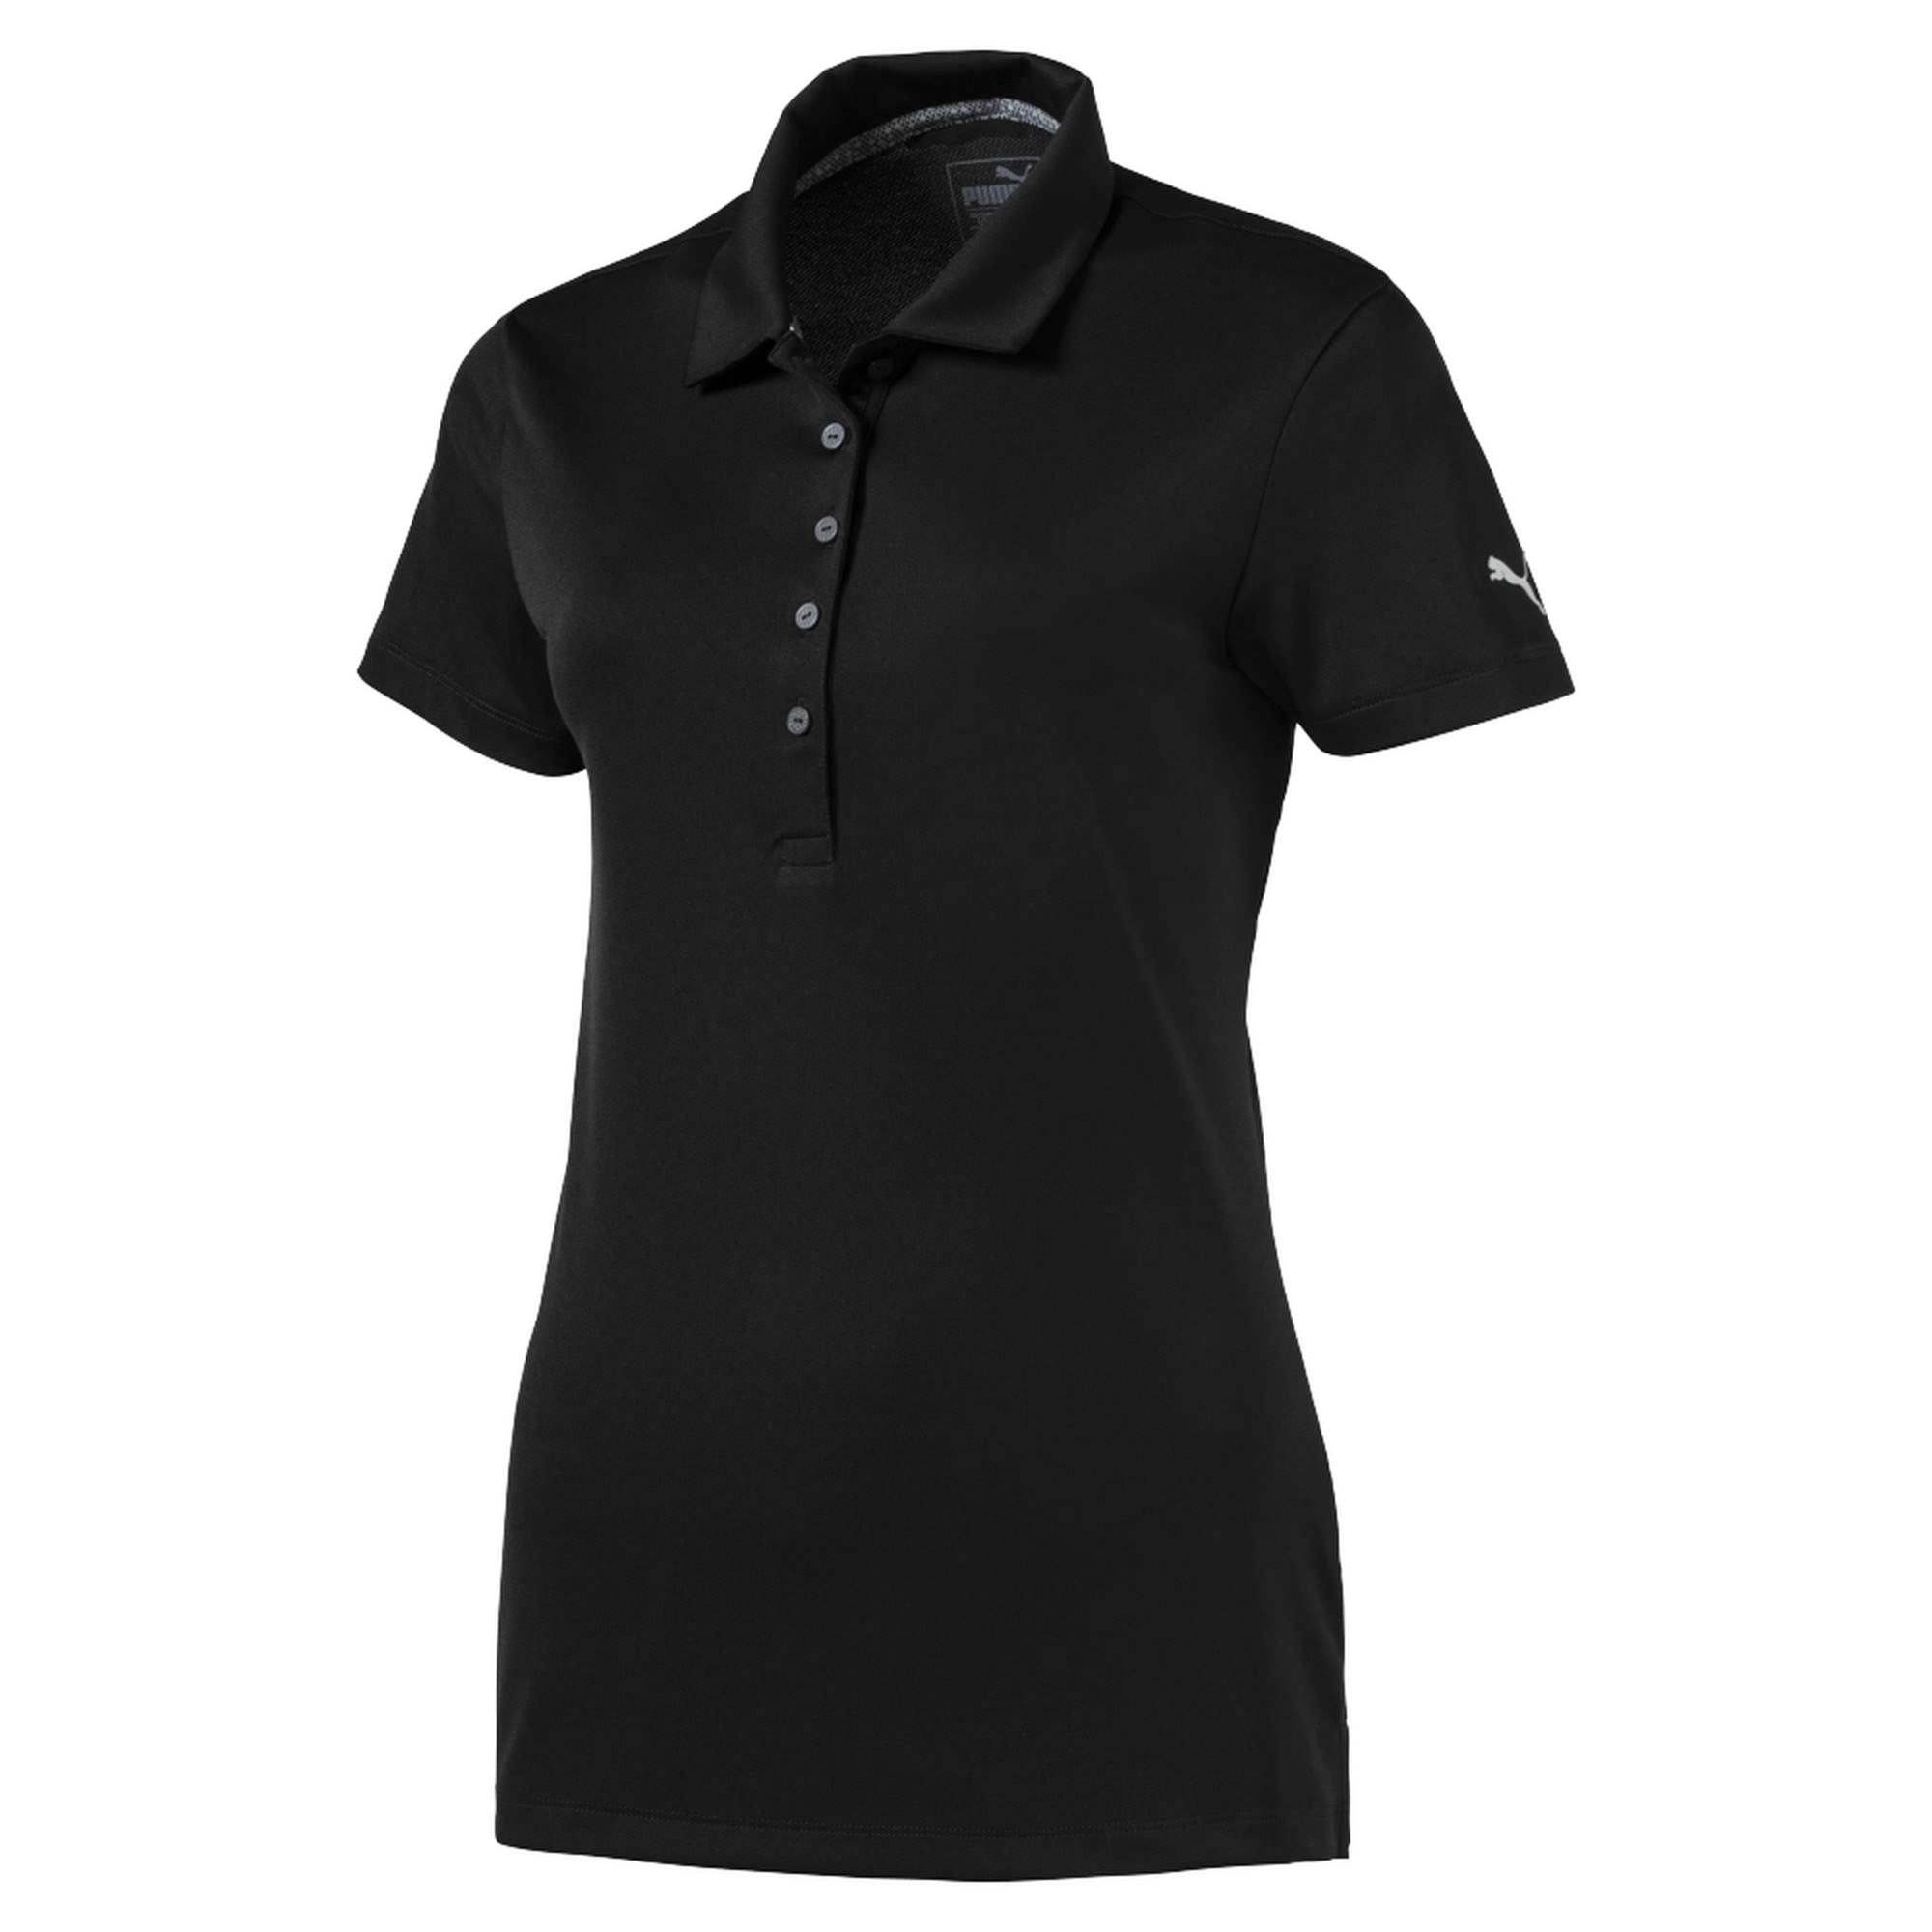 Women's Pounce Short Sleeve Polo